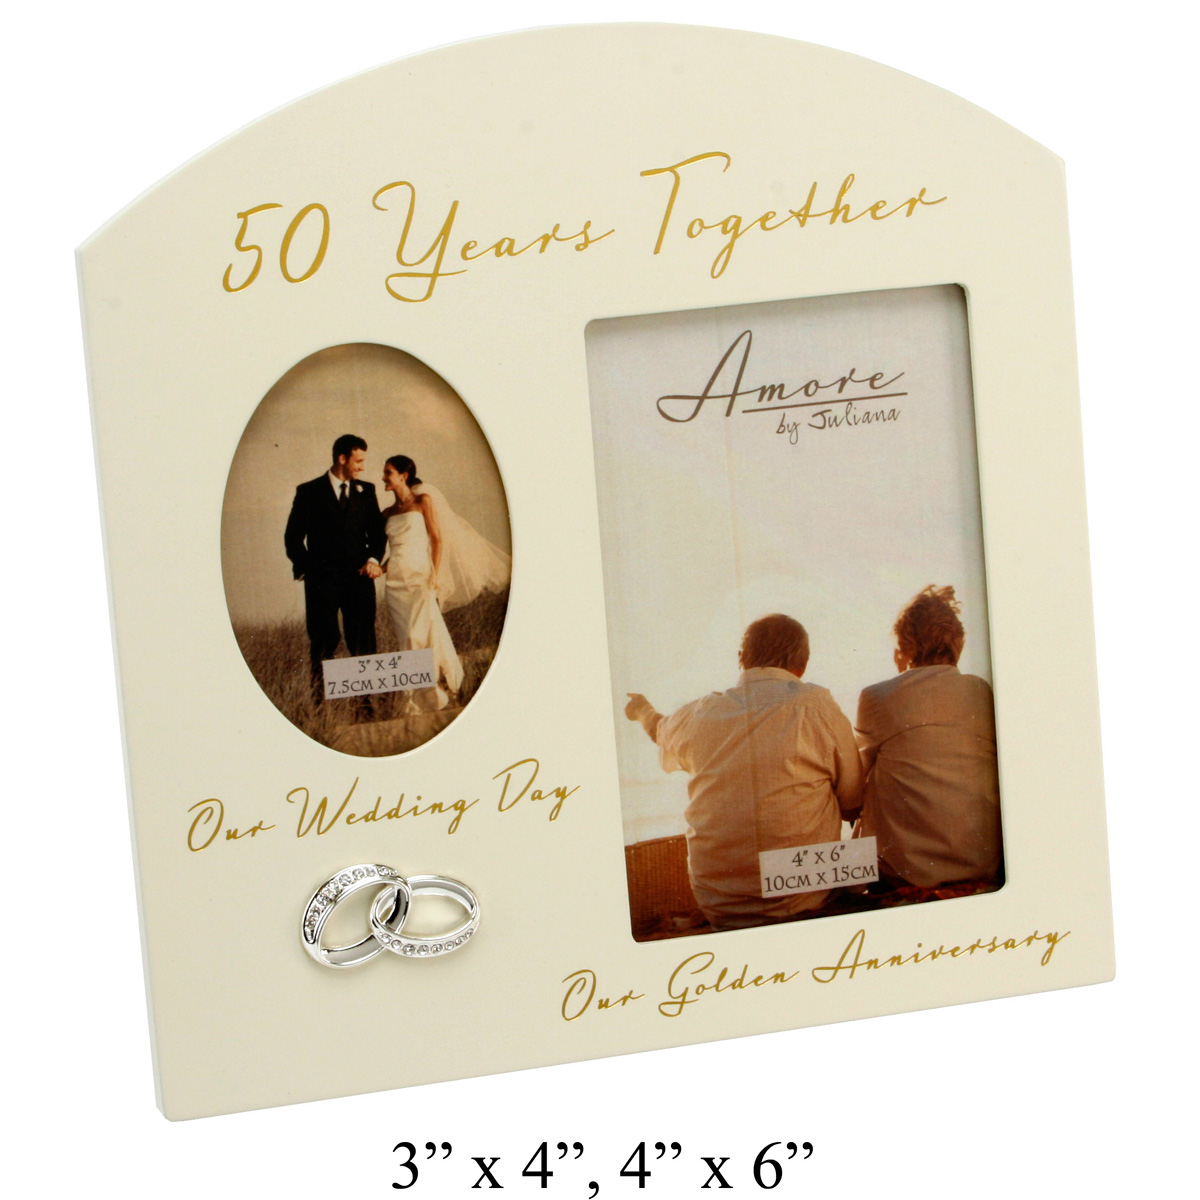 Wedding Gifts Picture Frames : ... Frames. 50th Golden Wedding Anniversary Multi-Picture Frame 6